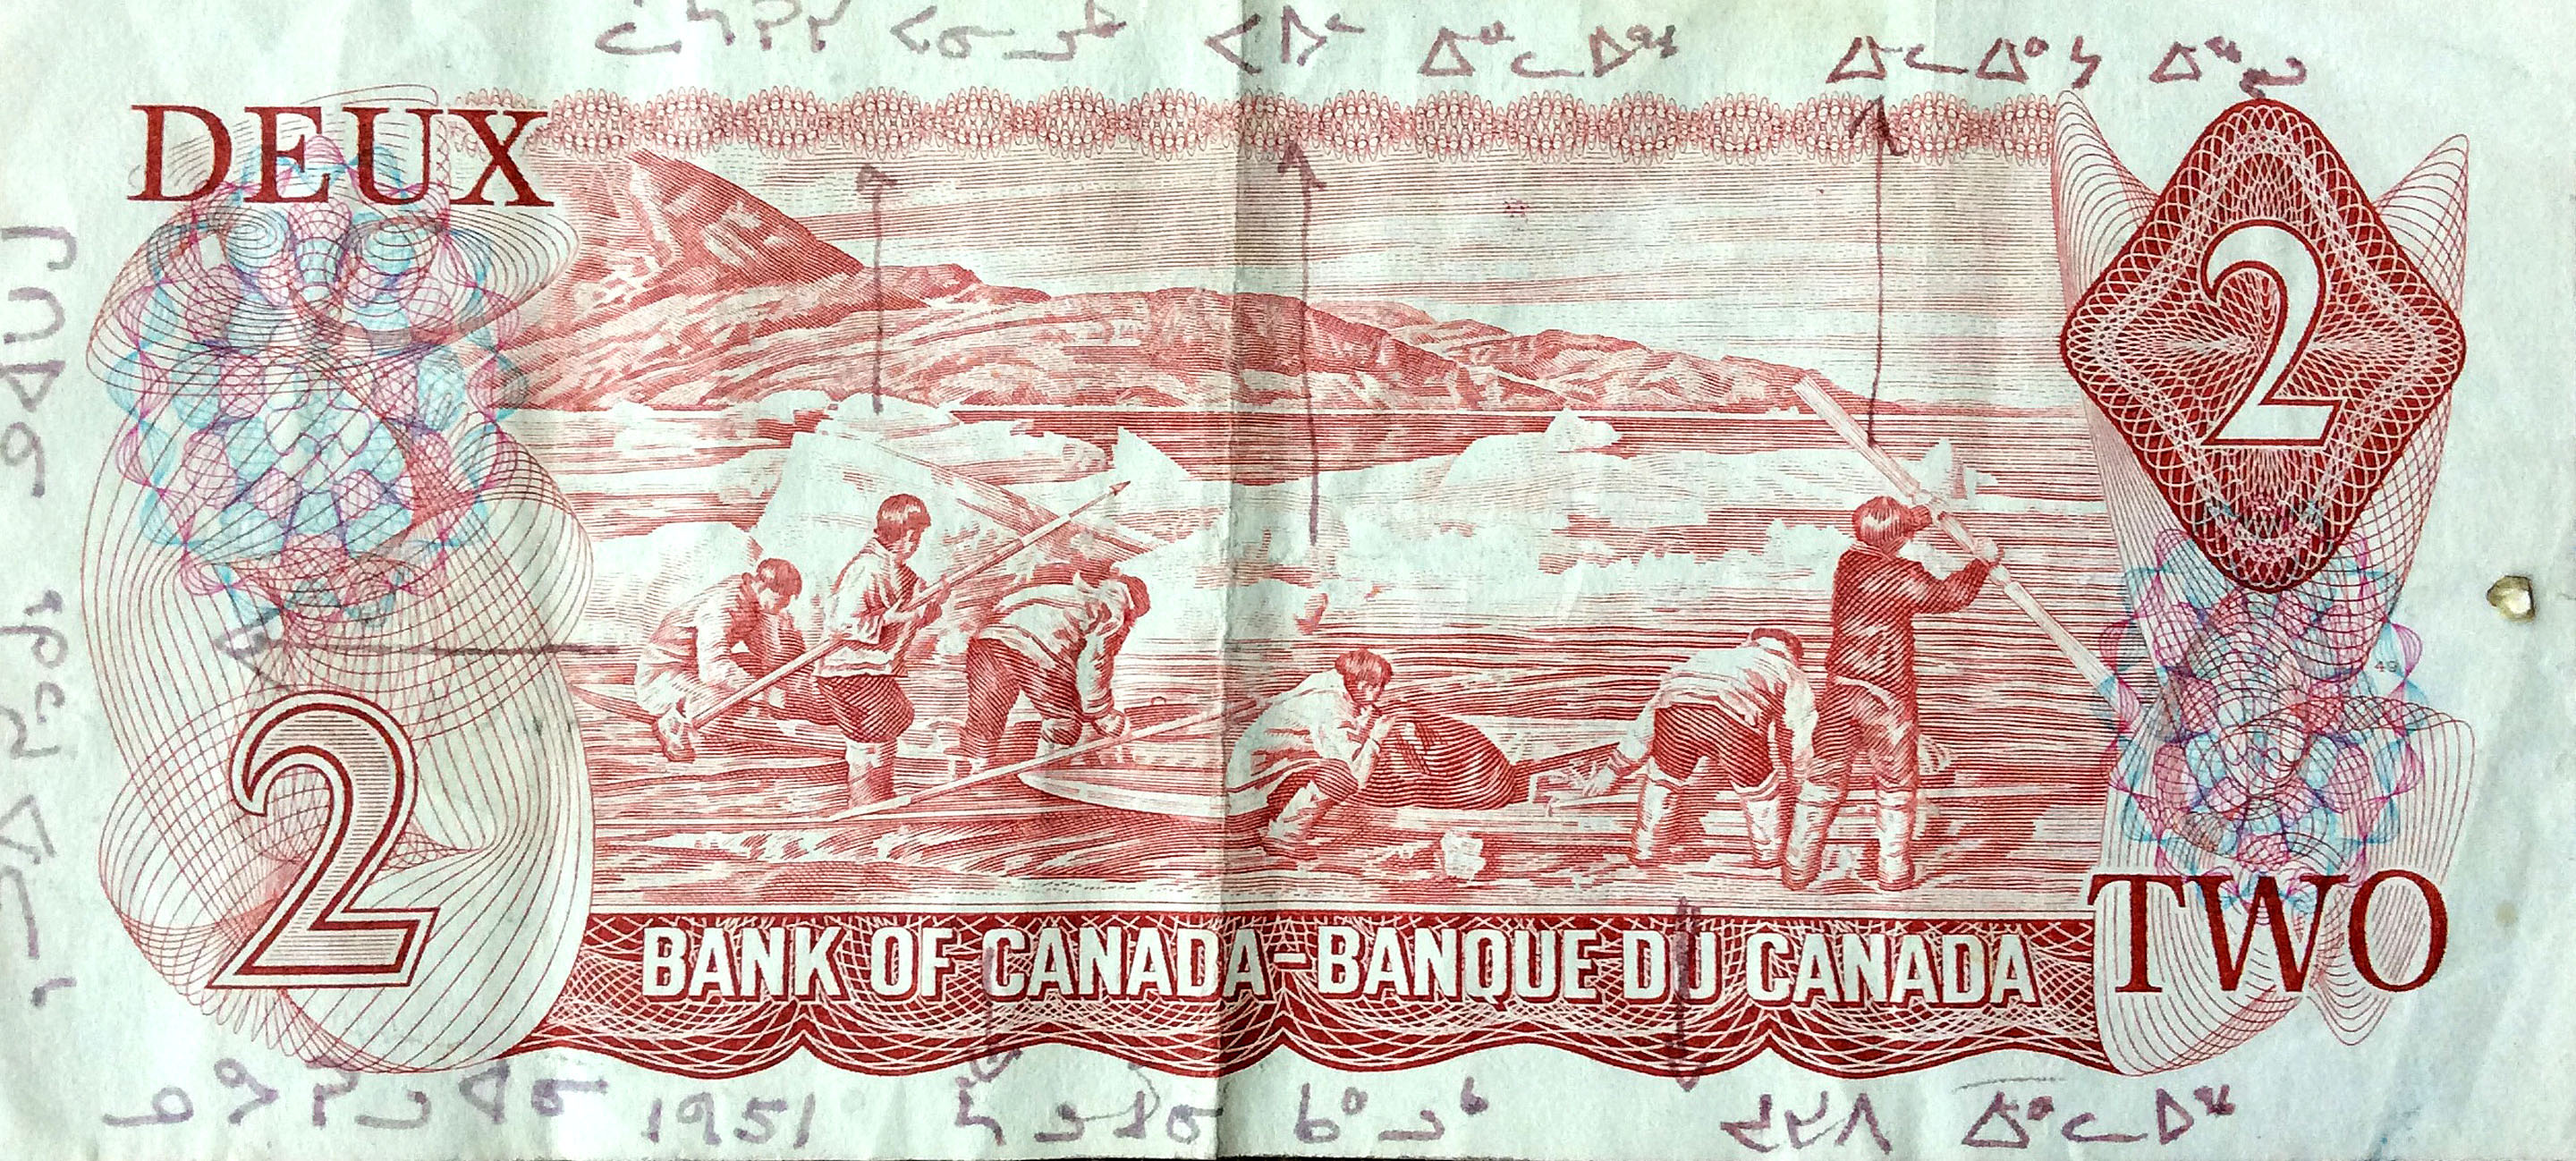 Here's the Inuit two-dollar bill that circulated between 1975 and 1996, based on a photograph that the late Doug Wilkinson took in 1951, with the names of the six men written on it by the late Leah Idlout: From left to right: Gideon Qitsualik, crouched and working on a kayak; Lazarus Paniluk, holding a harpoon; Solomon Kalluk, bent over a kayak; Paul Idlout, inflating an avataq (float); Joseph Idlout, with his back to the camera; and young Elijah Erkloo, holding a paddle. (IMAGE COURTESY OF JOHN MACDONALD)